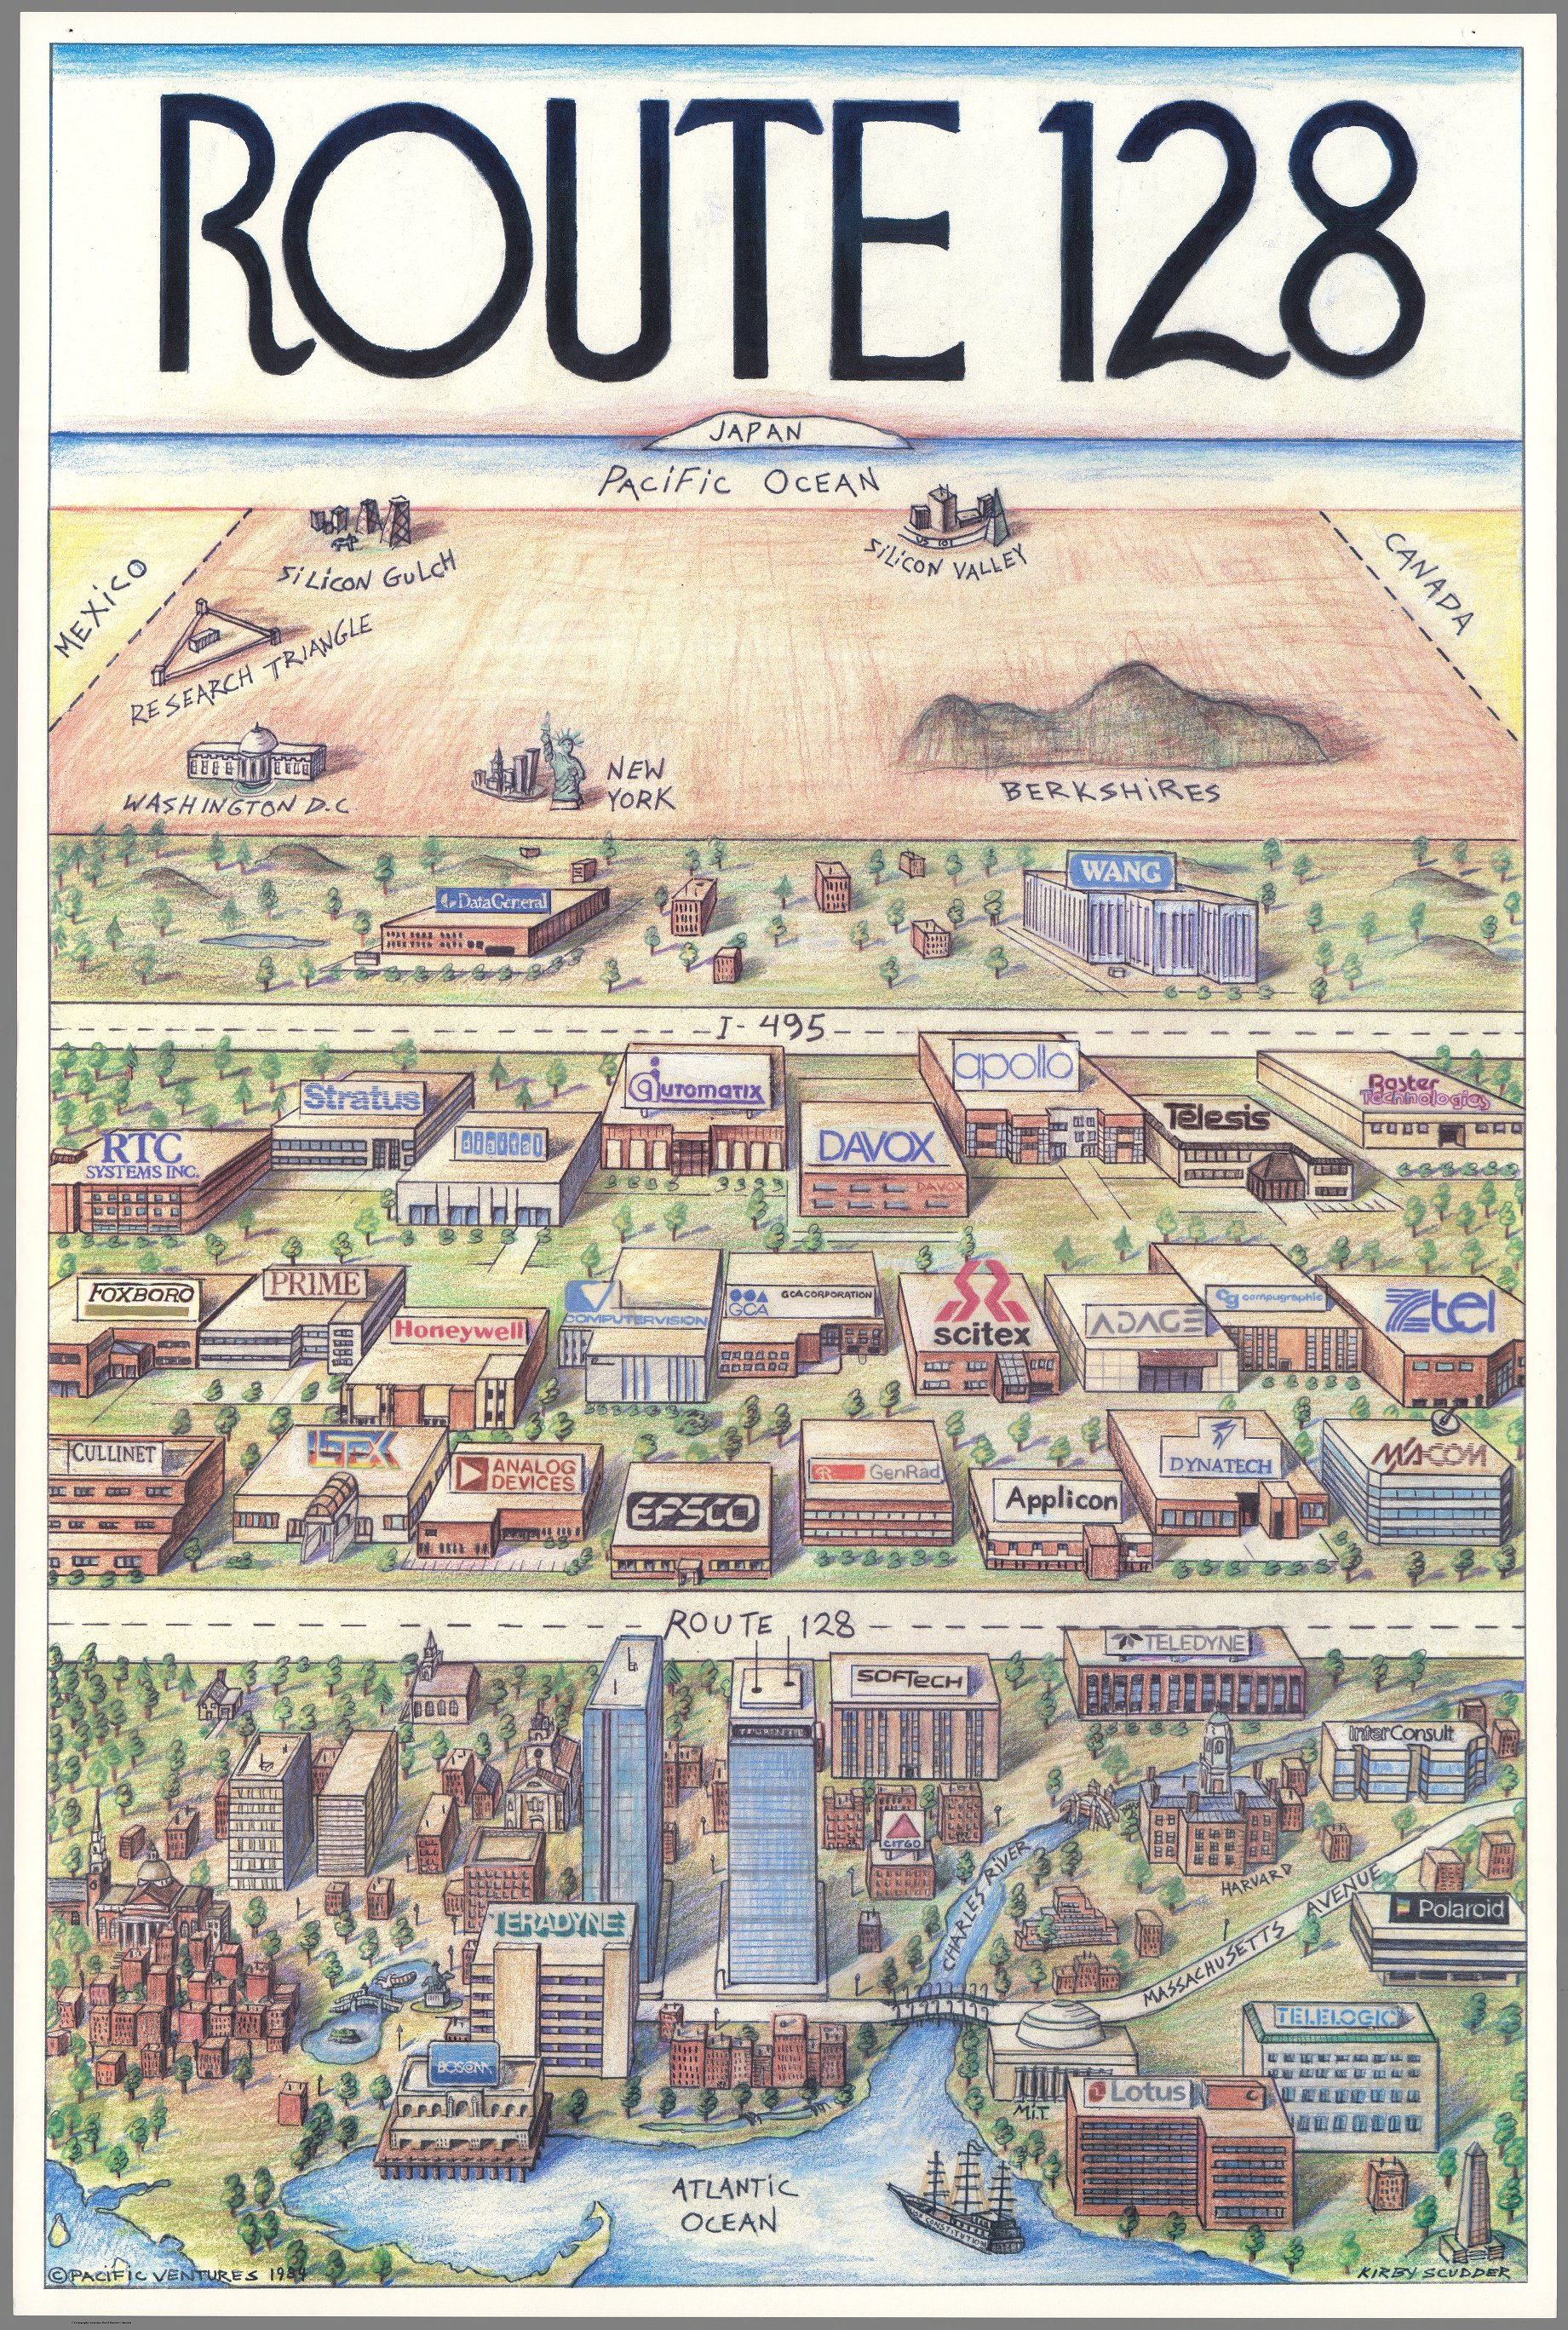 David Rumsey Historical Map Collection All Categories